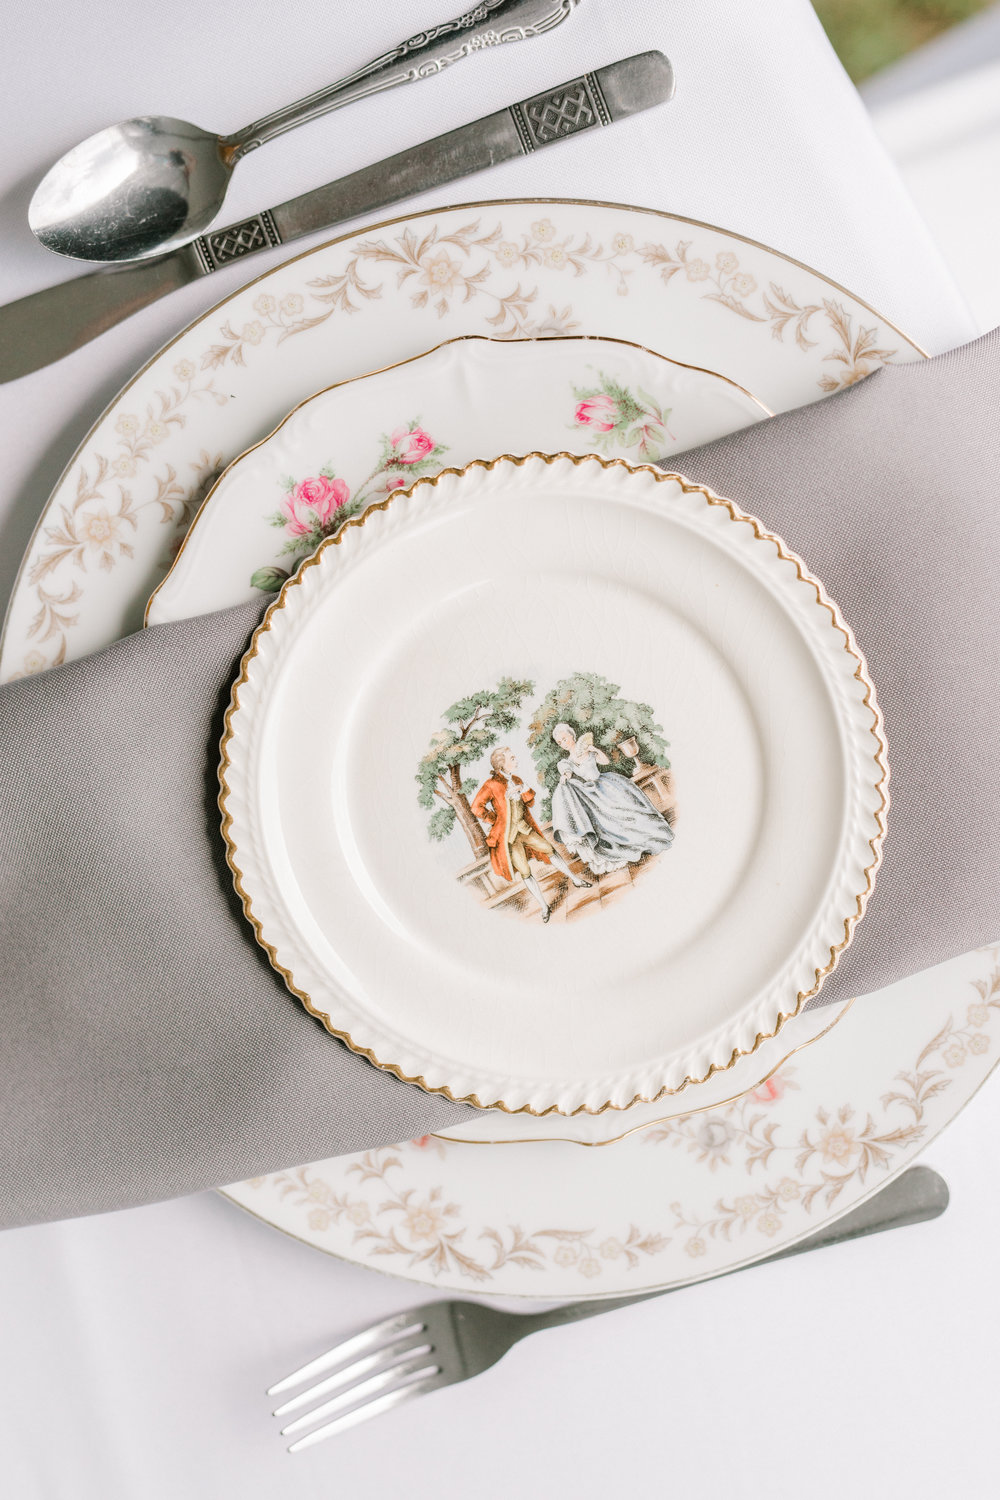 haley-richter-photography-fero-vineyards-winery-summer-wedding-allison-and-josh-winery-vintage-plate-place-setting-fine-china-ecclectic-dinnerware-gray-napkin-porcelain-plate